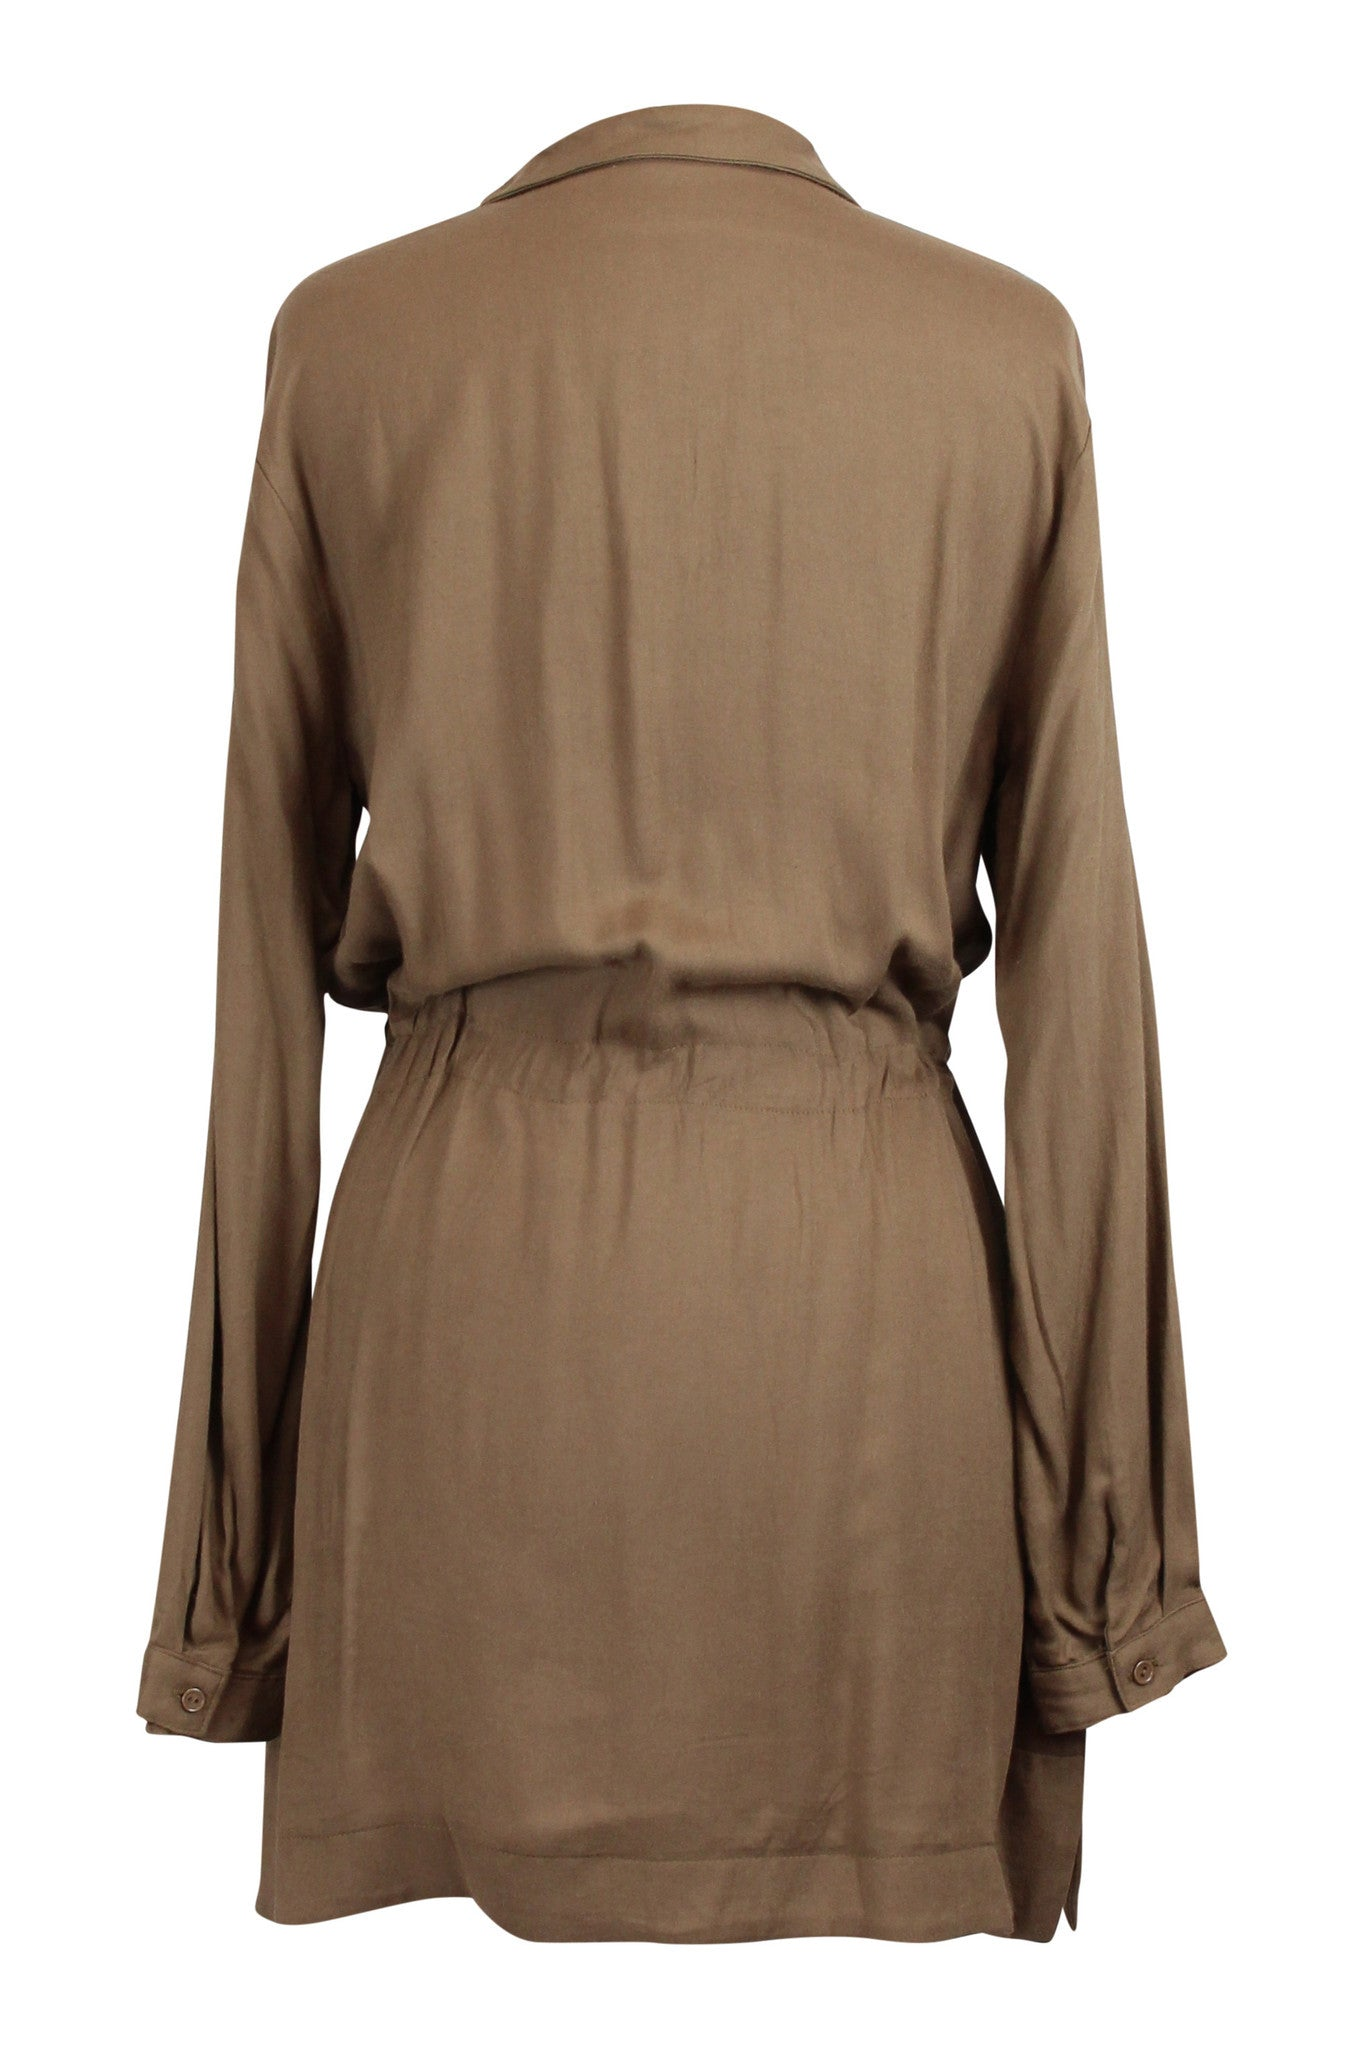 Safari Chic Shirt Dress - Camel